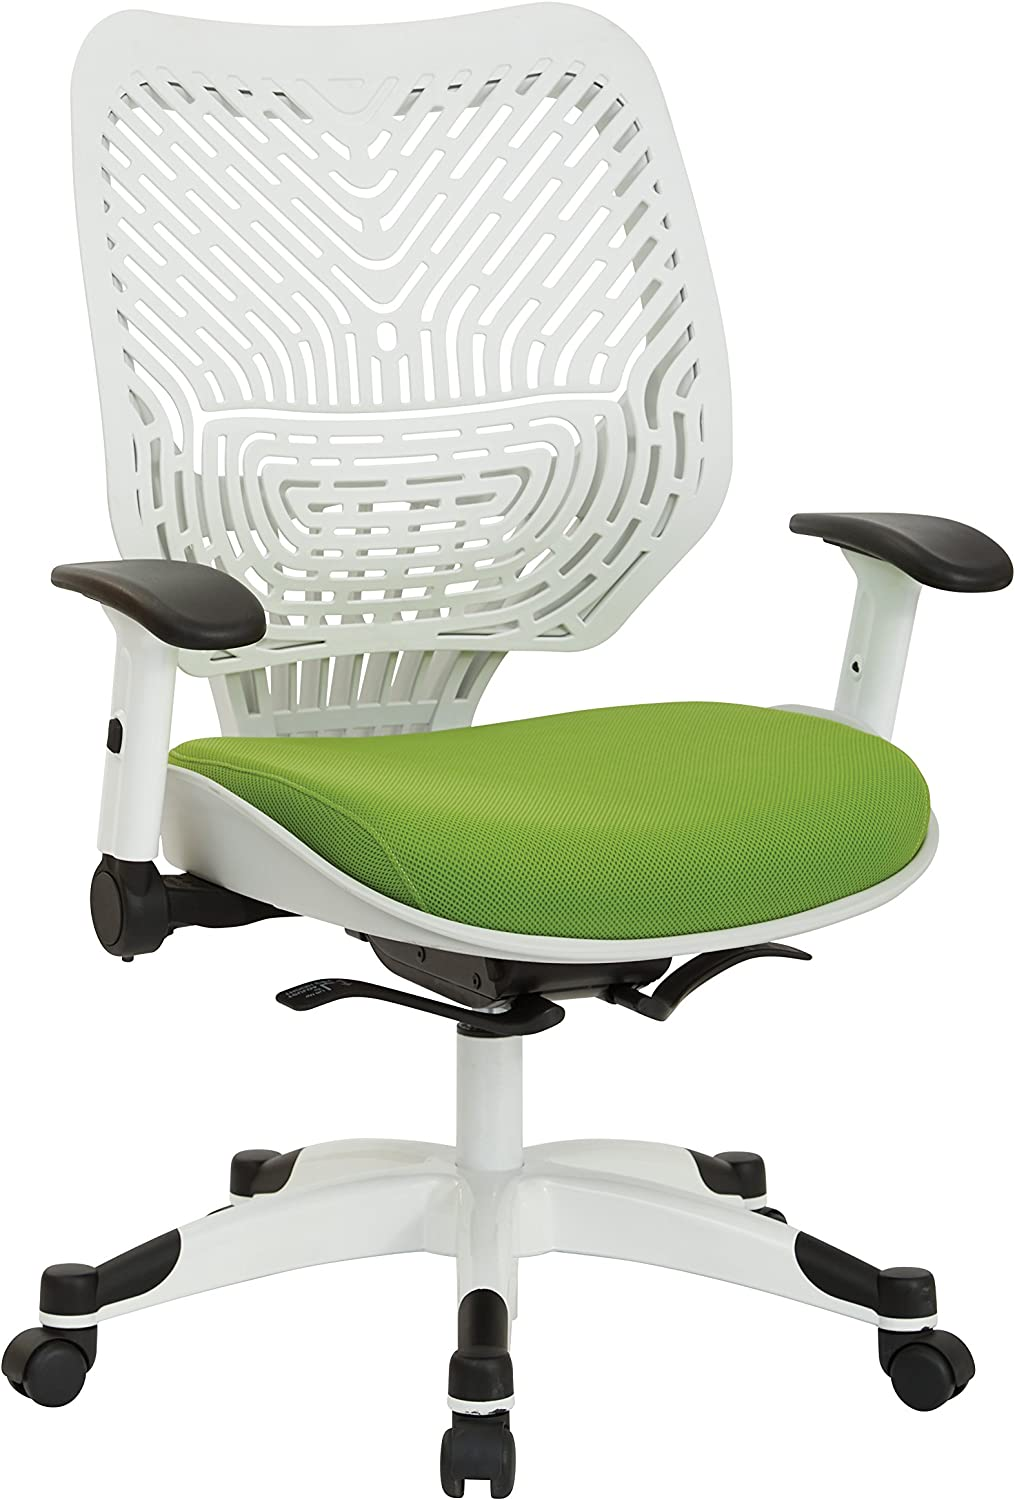 Office Star Pulsar SpaceFlex White Back Manager's Office Chair with Self Lumbar Support Mechanism, Adjustable Flip Arms, Coated Nylon Base and Green Mesh Seat